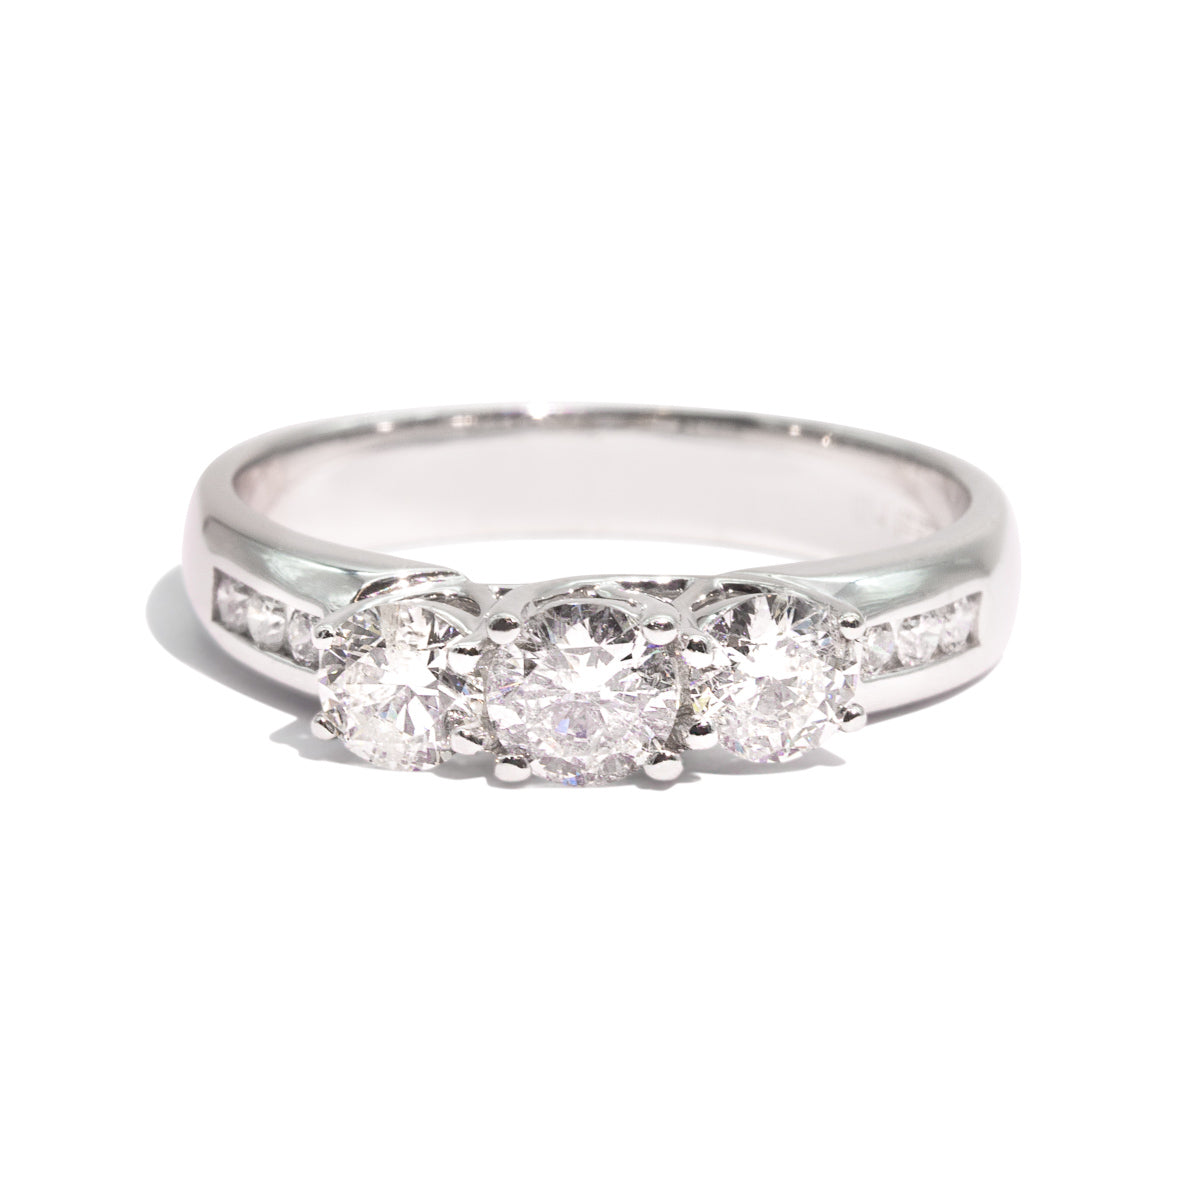 The Lucy Vintage Diamond Ring